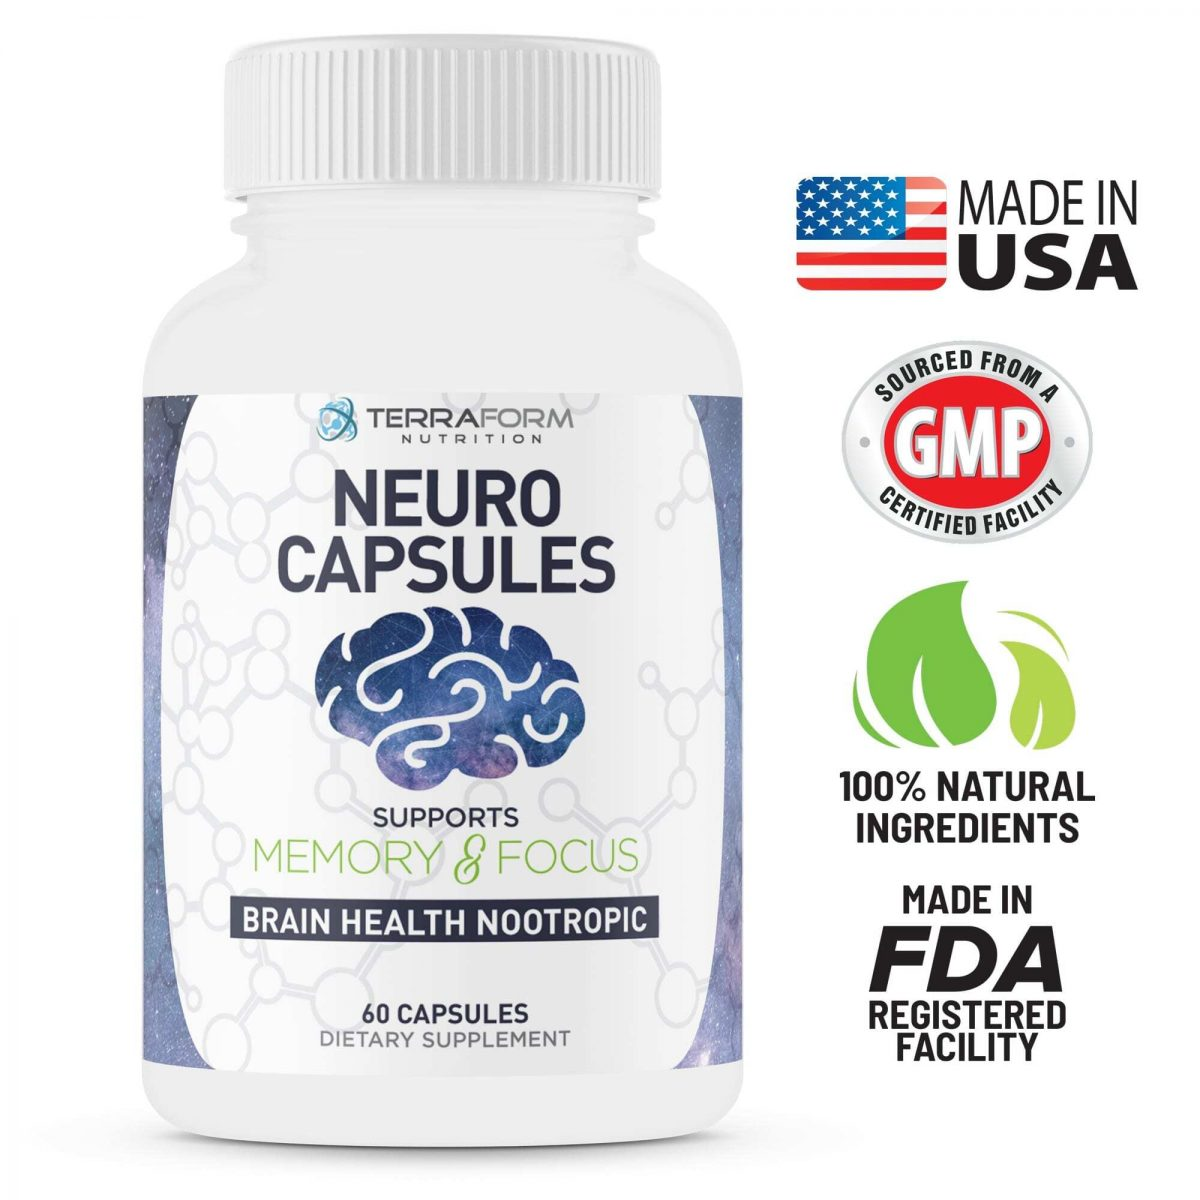 Powerful Nootropics – Neuro Capsules - 60 Capsules - TerraForm Nutrition-3337